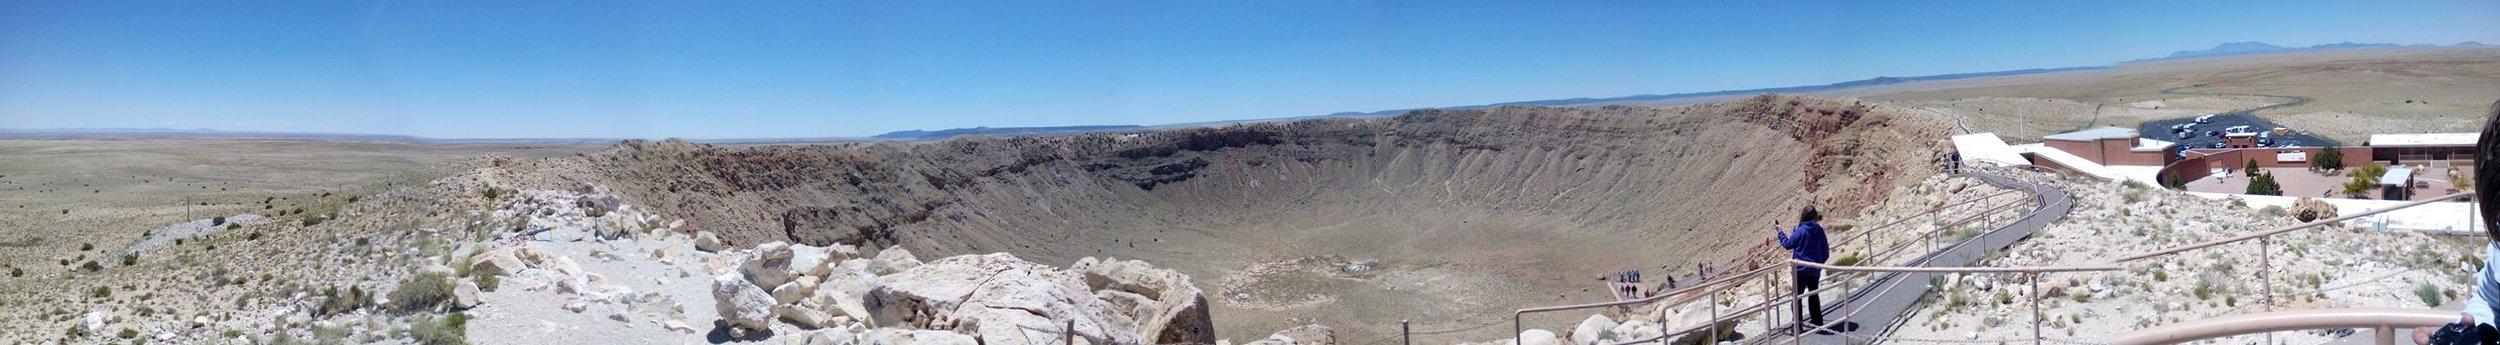 Meteor Crater, Arizona - Credit: 2 Grumpy People